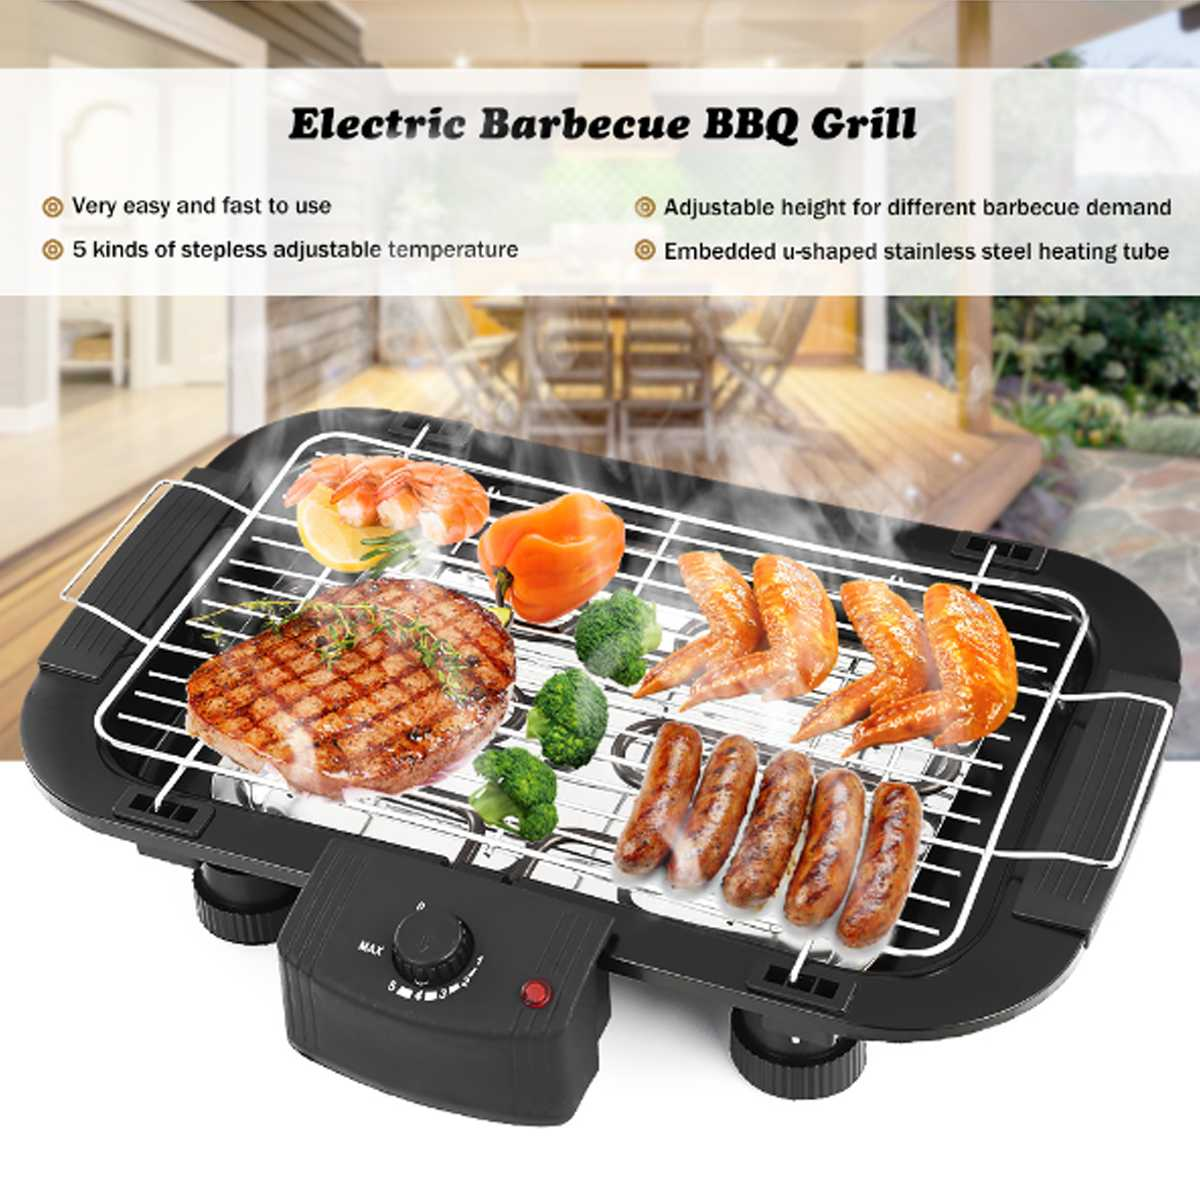 BBQ Teppanyaki Griddle Table Barbeque Grill Non Stick Electric Top Smokeless EU Plug Rustless and Durable Adjustable Temperature